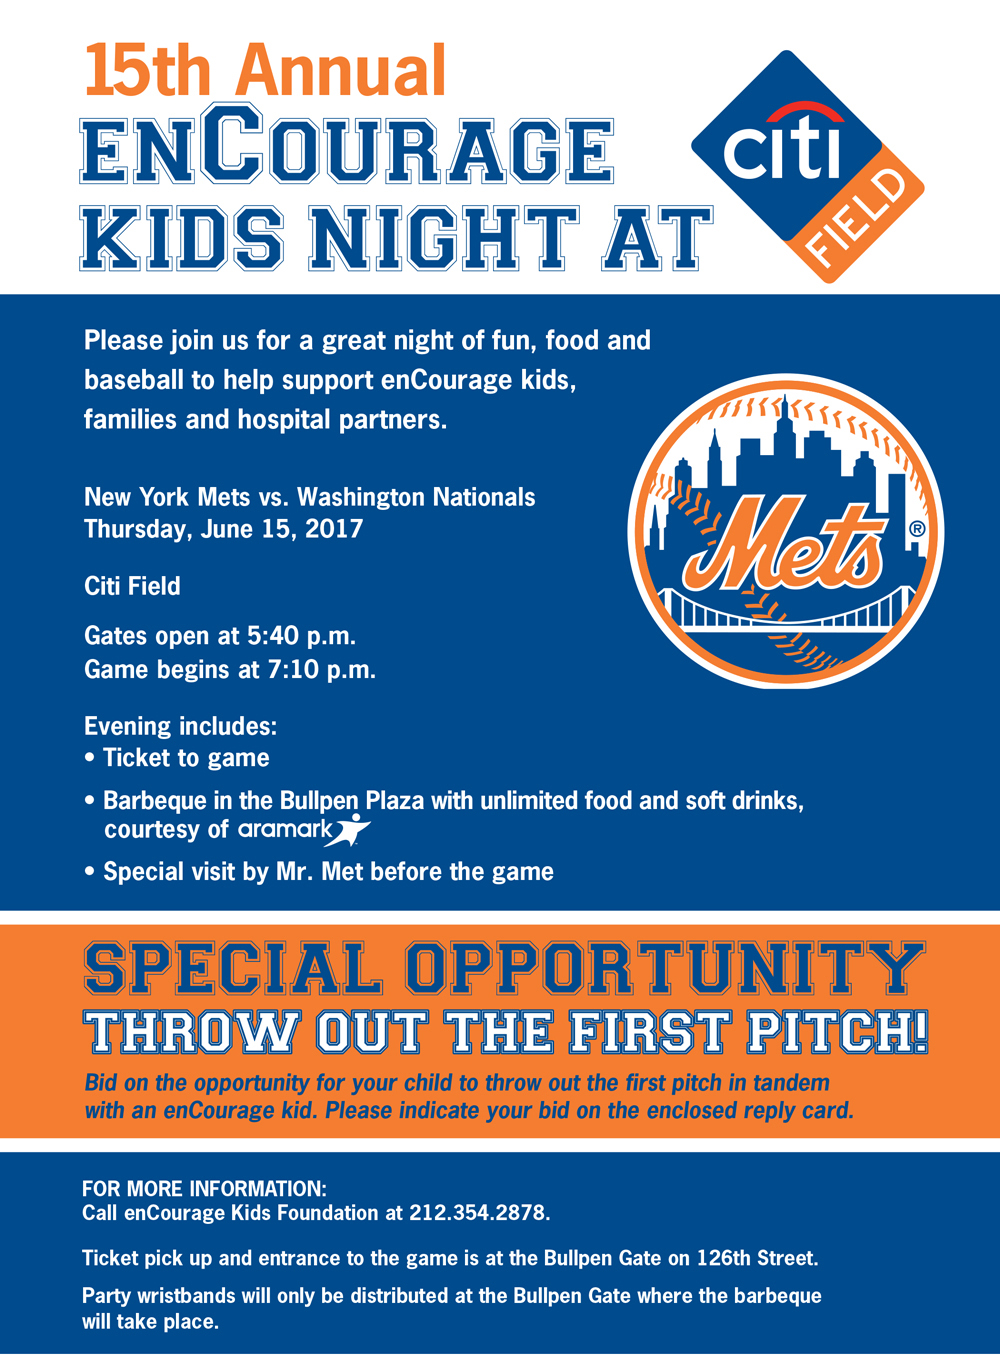 enCourage Kids Night at Citi Field